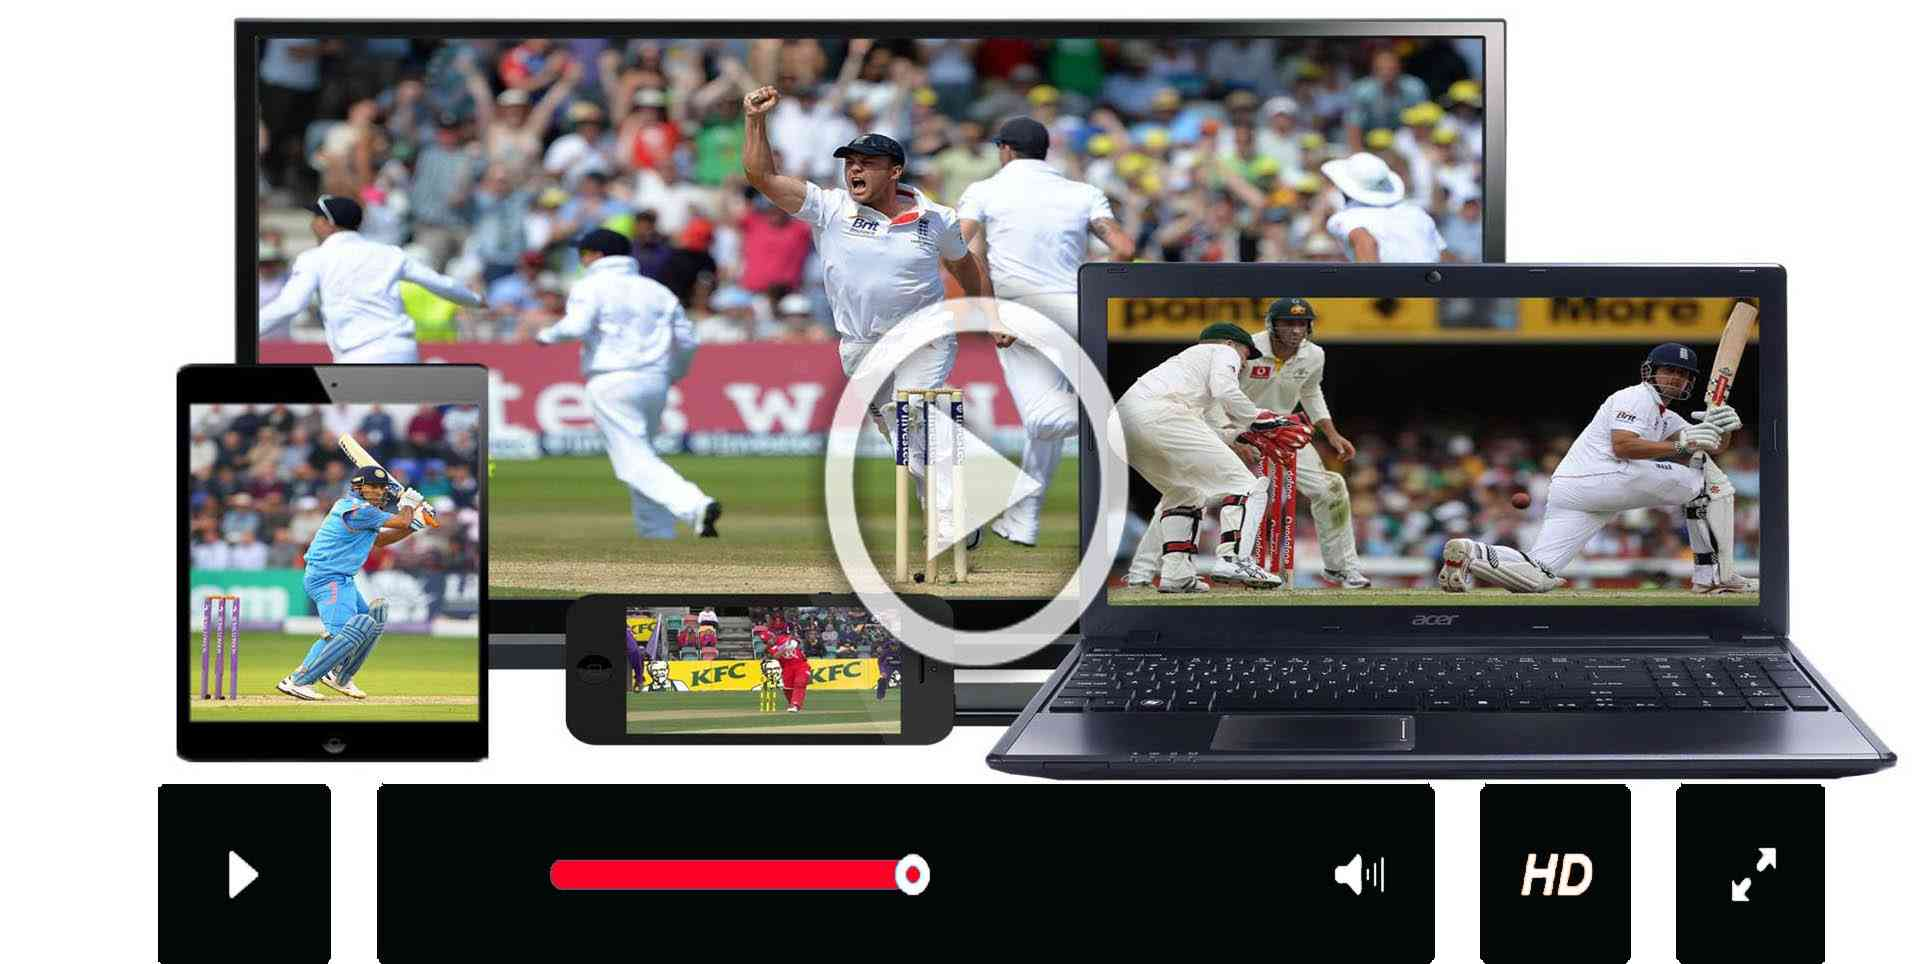 The Ashes Test Series 2015